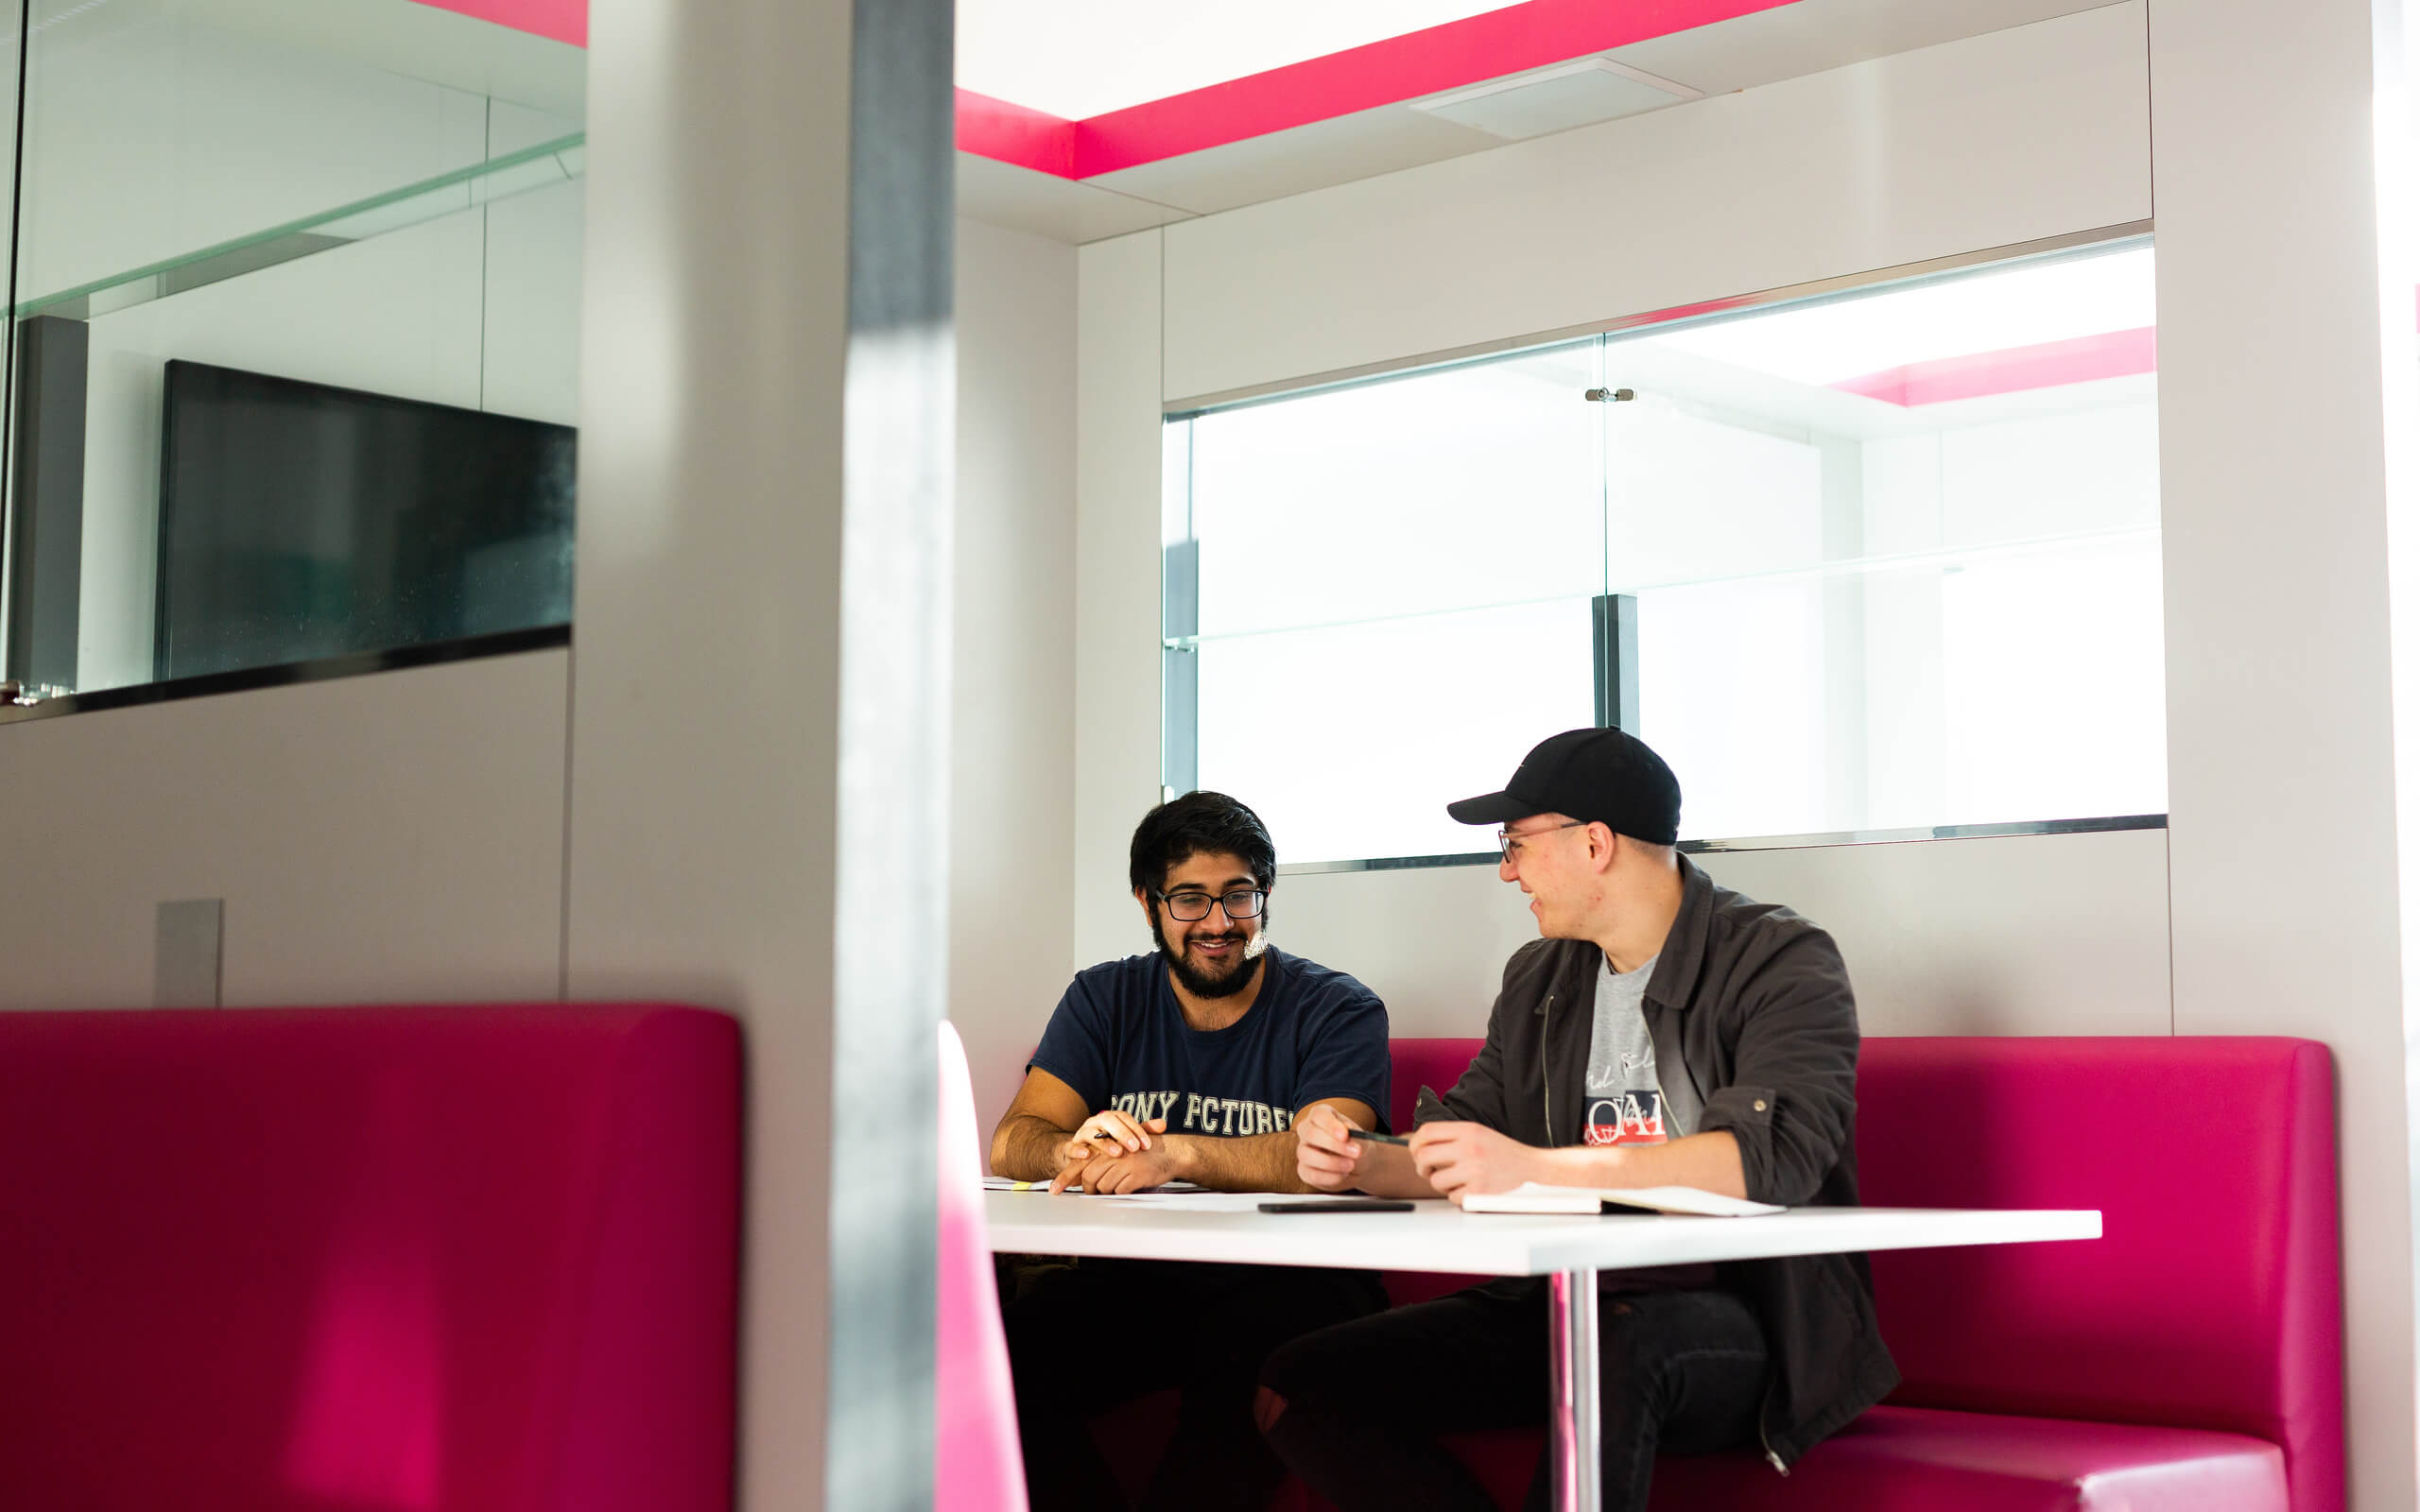 Two students studying in a study pod